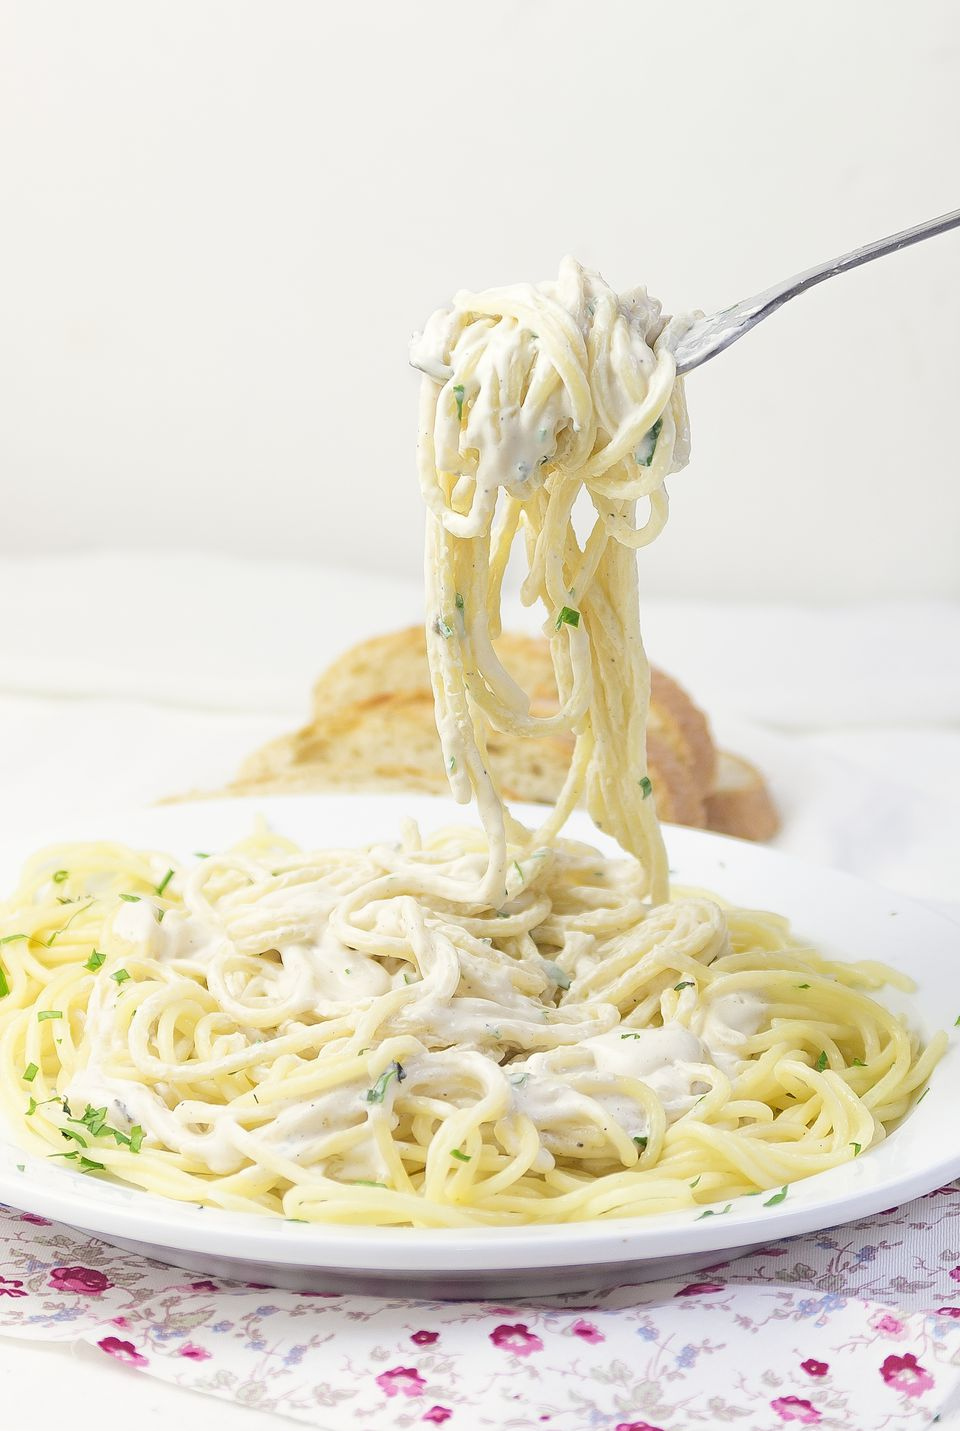 Pasta with vegan white sauce